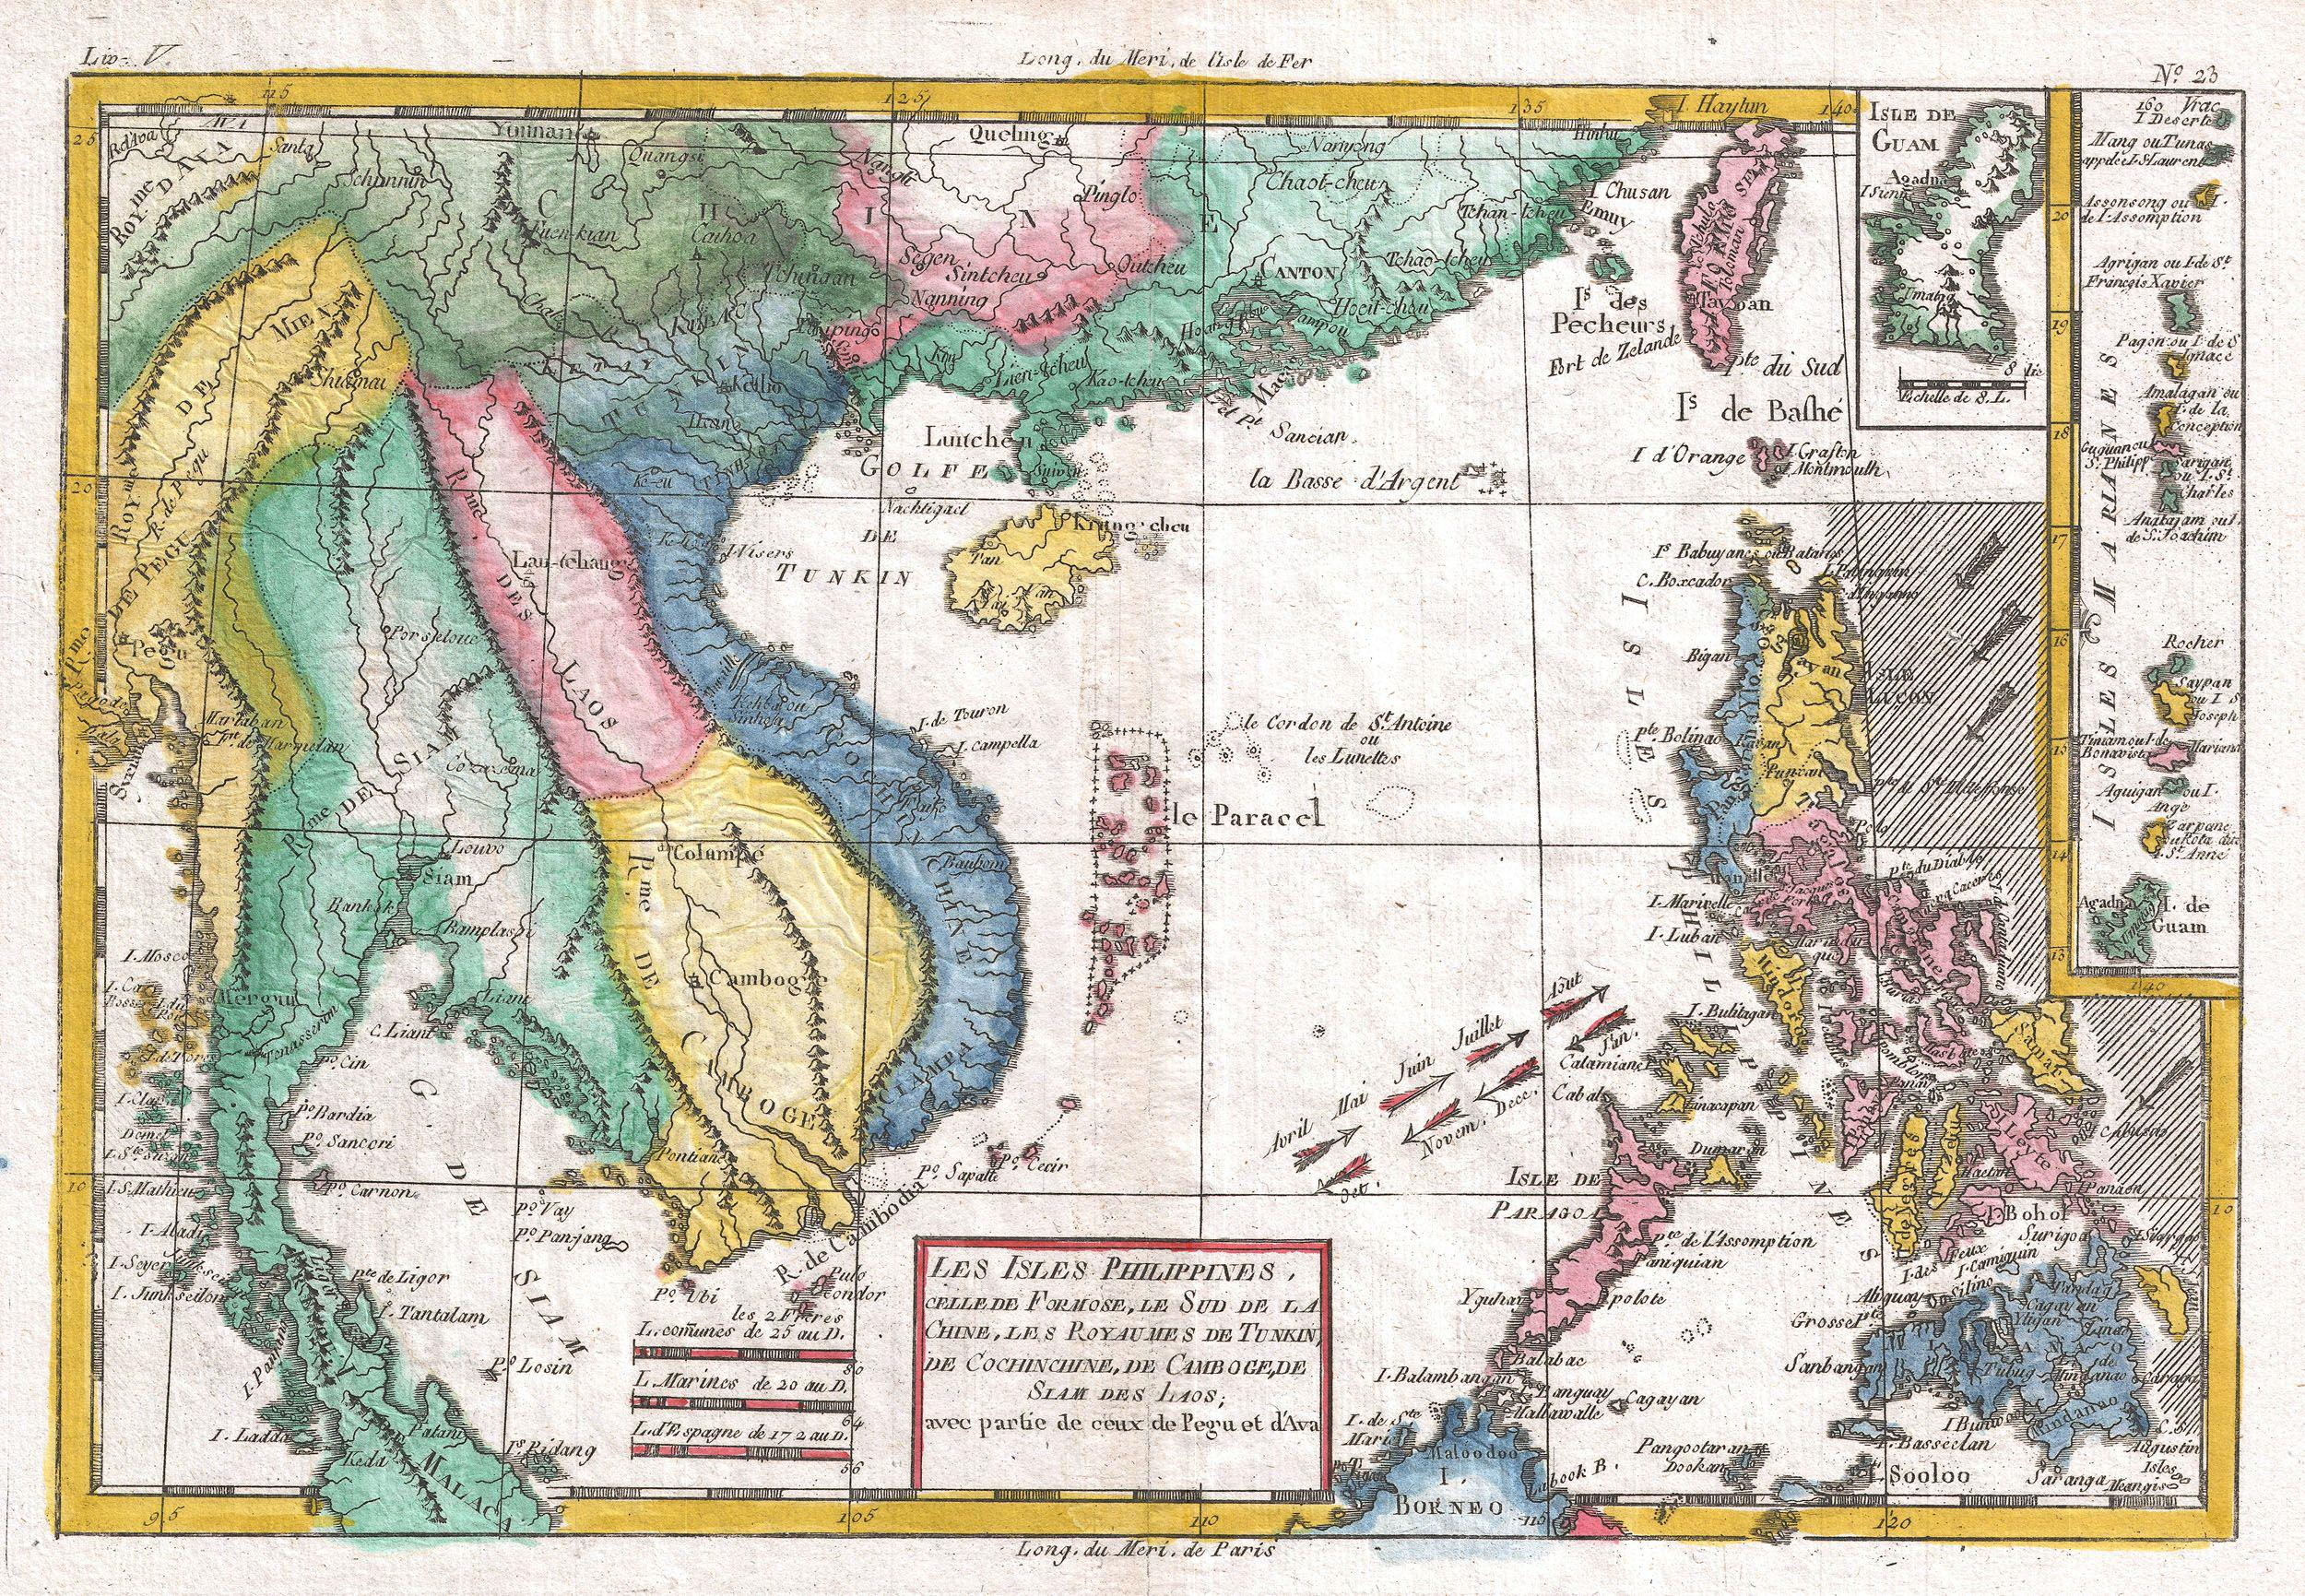 http://upload.wikimedia.org/wikipedia/commons/6/67/1780_Raynal_and_Bonne_Map_of_Southeast_Asia_and_the_Philippines_-_Geographicus_-_Philippines-bonne-1780.jpg